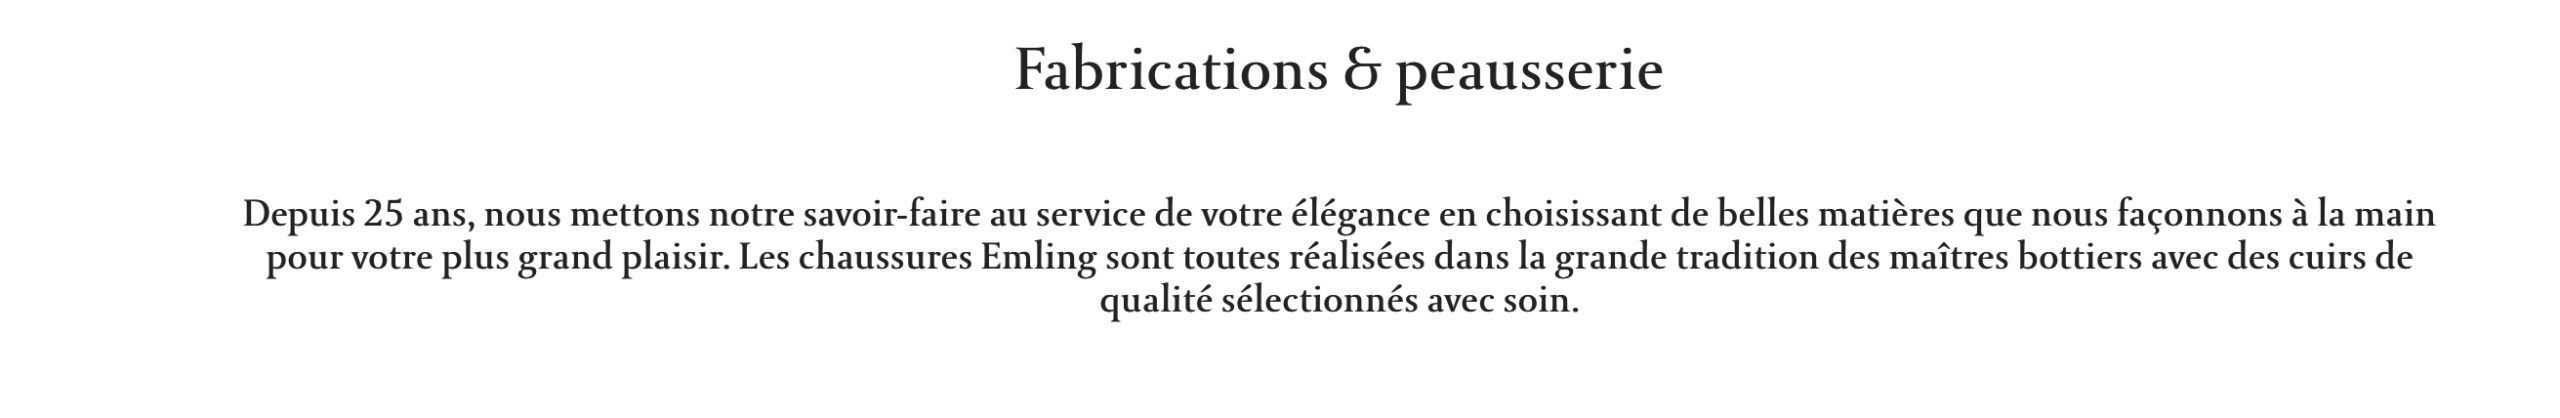 "Emling qui revendique la ""grande tradition des maitres bottiers"". Rien que ça. Alors que c'est bien évidement une marque industrielle en private label comme beaucoup d'autres, il n'y a rien de bottier ni de traditionnel là-dedans. (source : emling)."